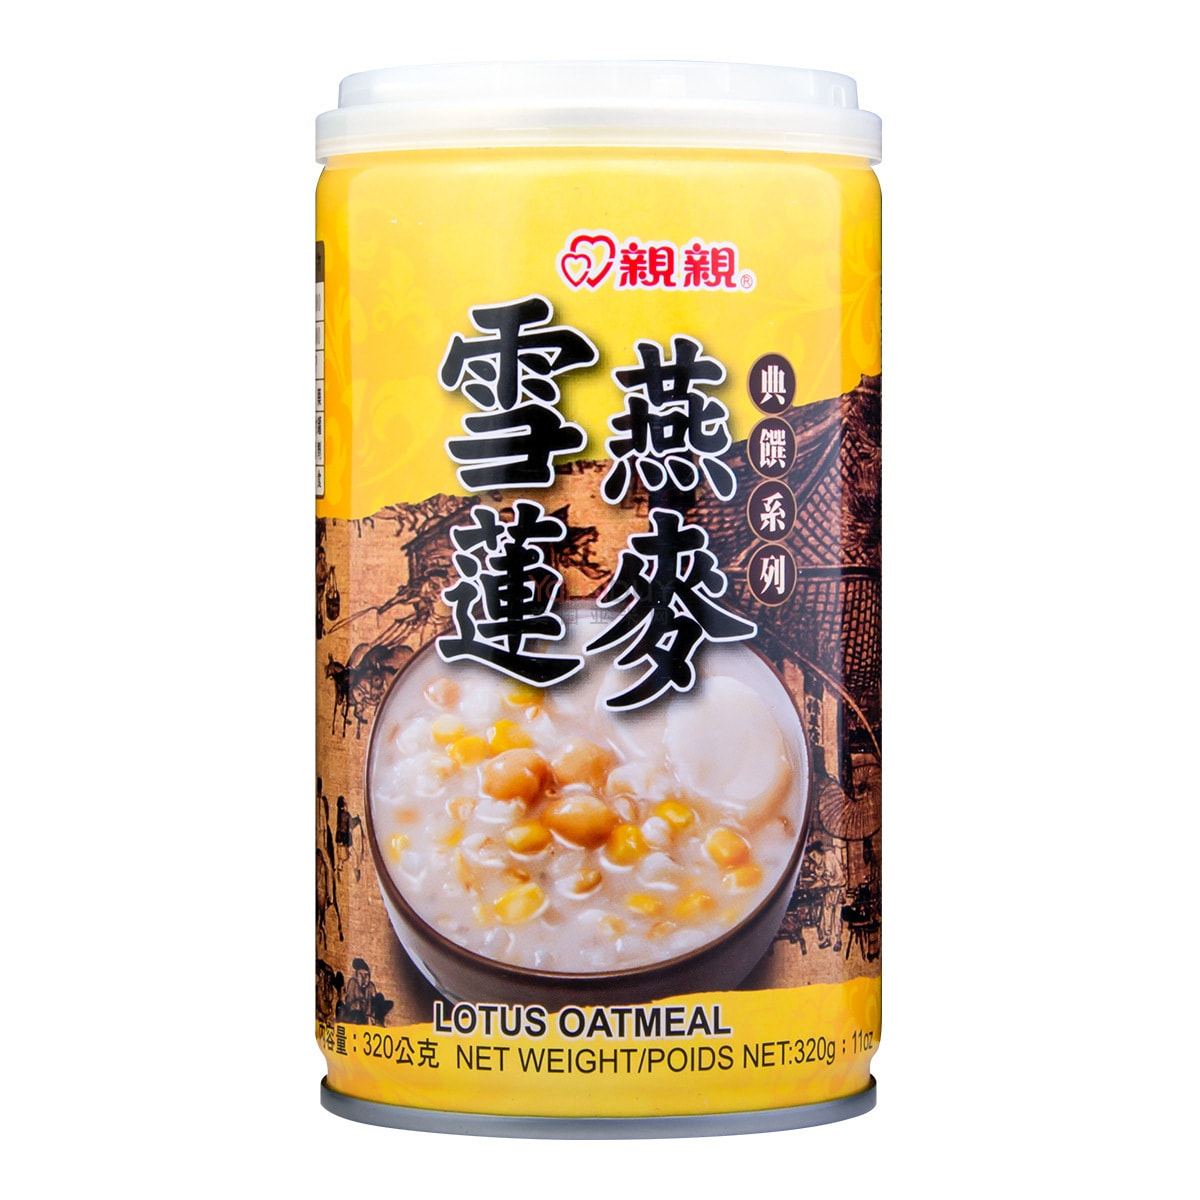 CHINCHIN Lotus Oatmeal 320g